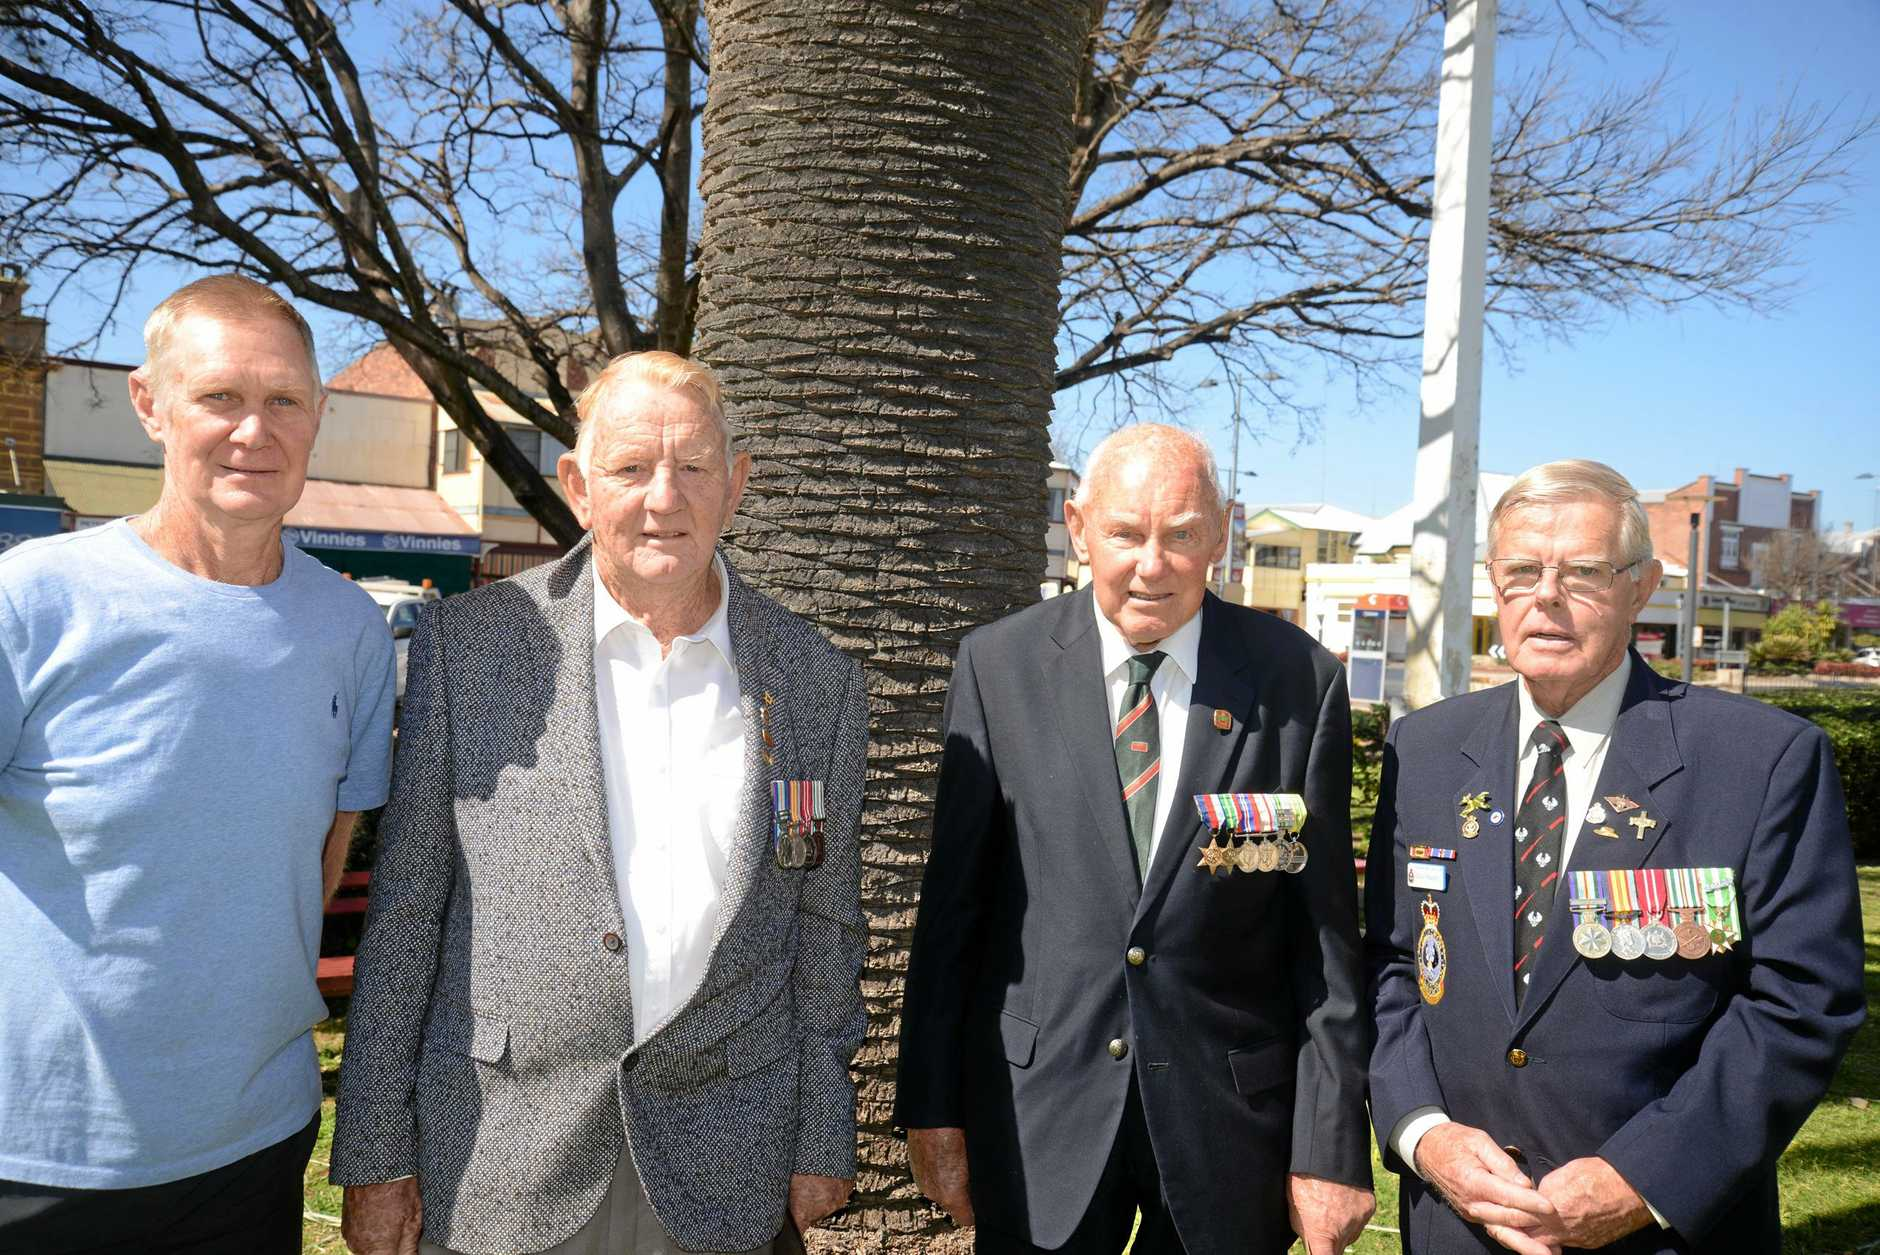 Arthur Campbell,  Brian Miller, Rex Baguley and Eddie Marshall at the Vietnam Veterans Day Remembrance Ceremony.